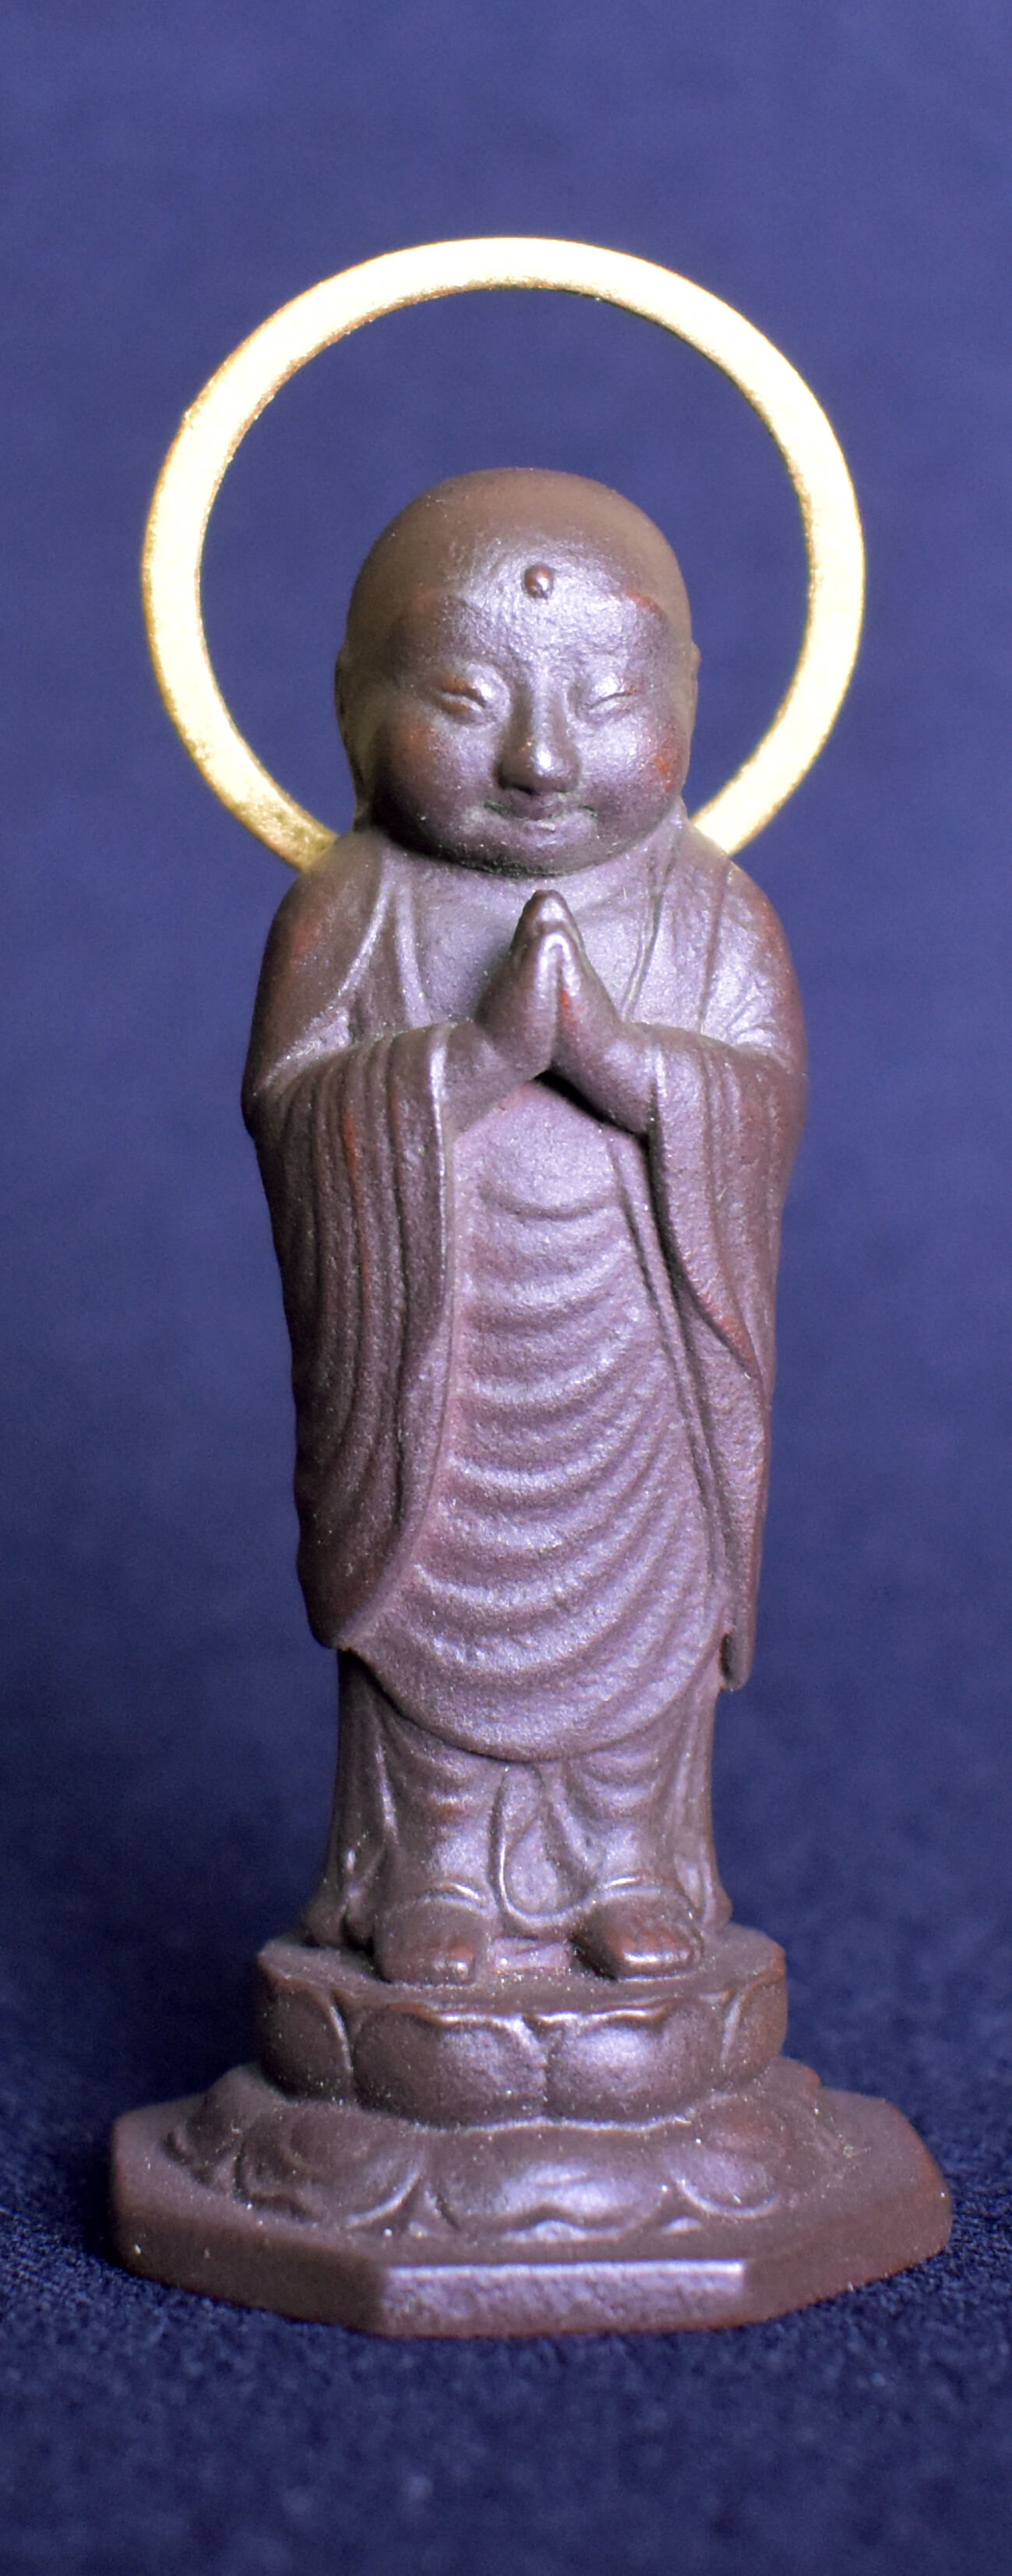 [Waganse-gassho-jizo]/Joining hands guardian deity of child of Japanese face